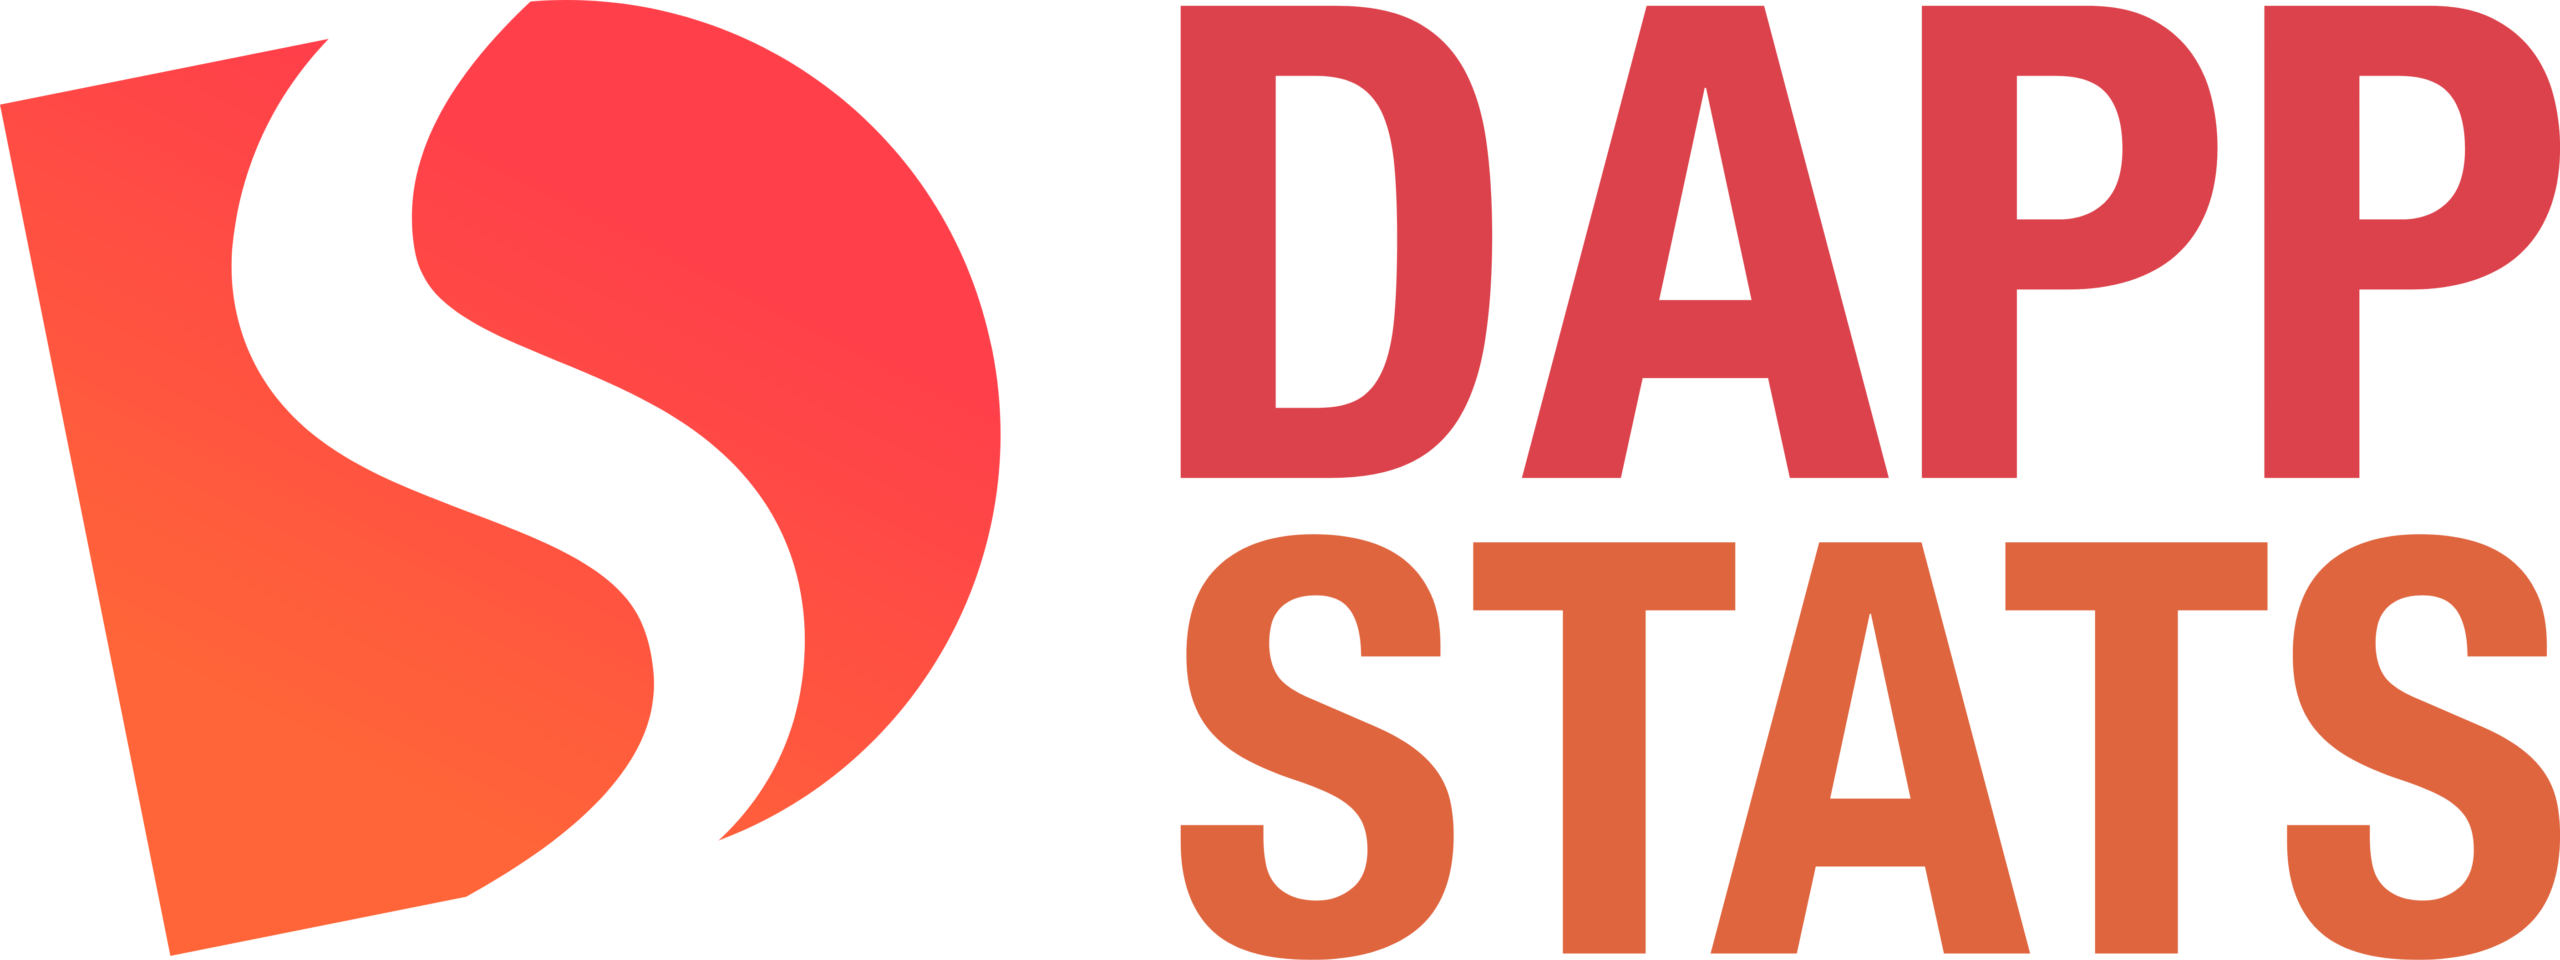 DappStats.com Provides a Simplified Way to Find Information on Decentralized Applications